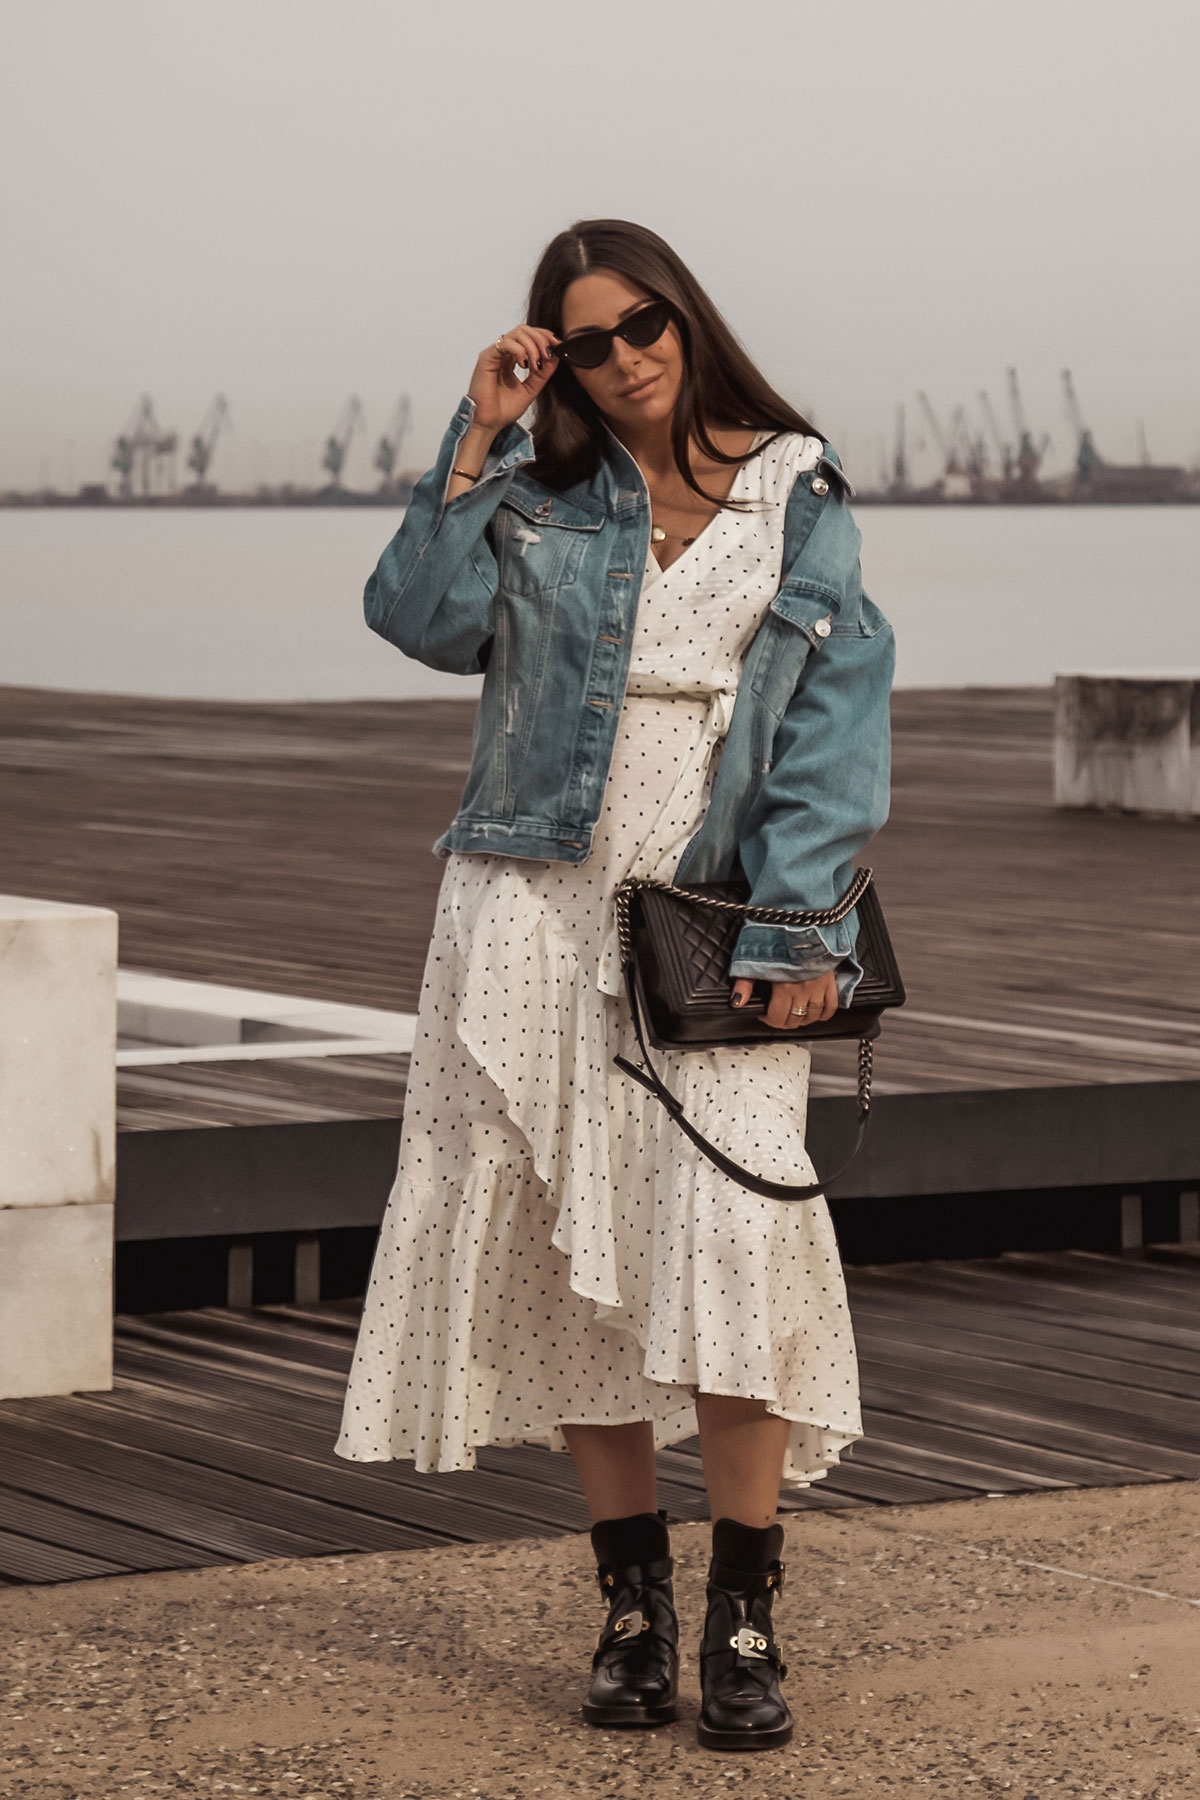 Stella Asteria wearing white polka dot dress with edgy black boots, denim jacket & Chanel boy bag - Spring/Summer 2018 fashion style inspiration